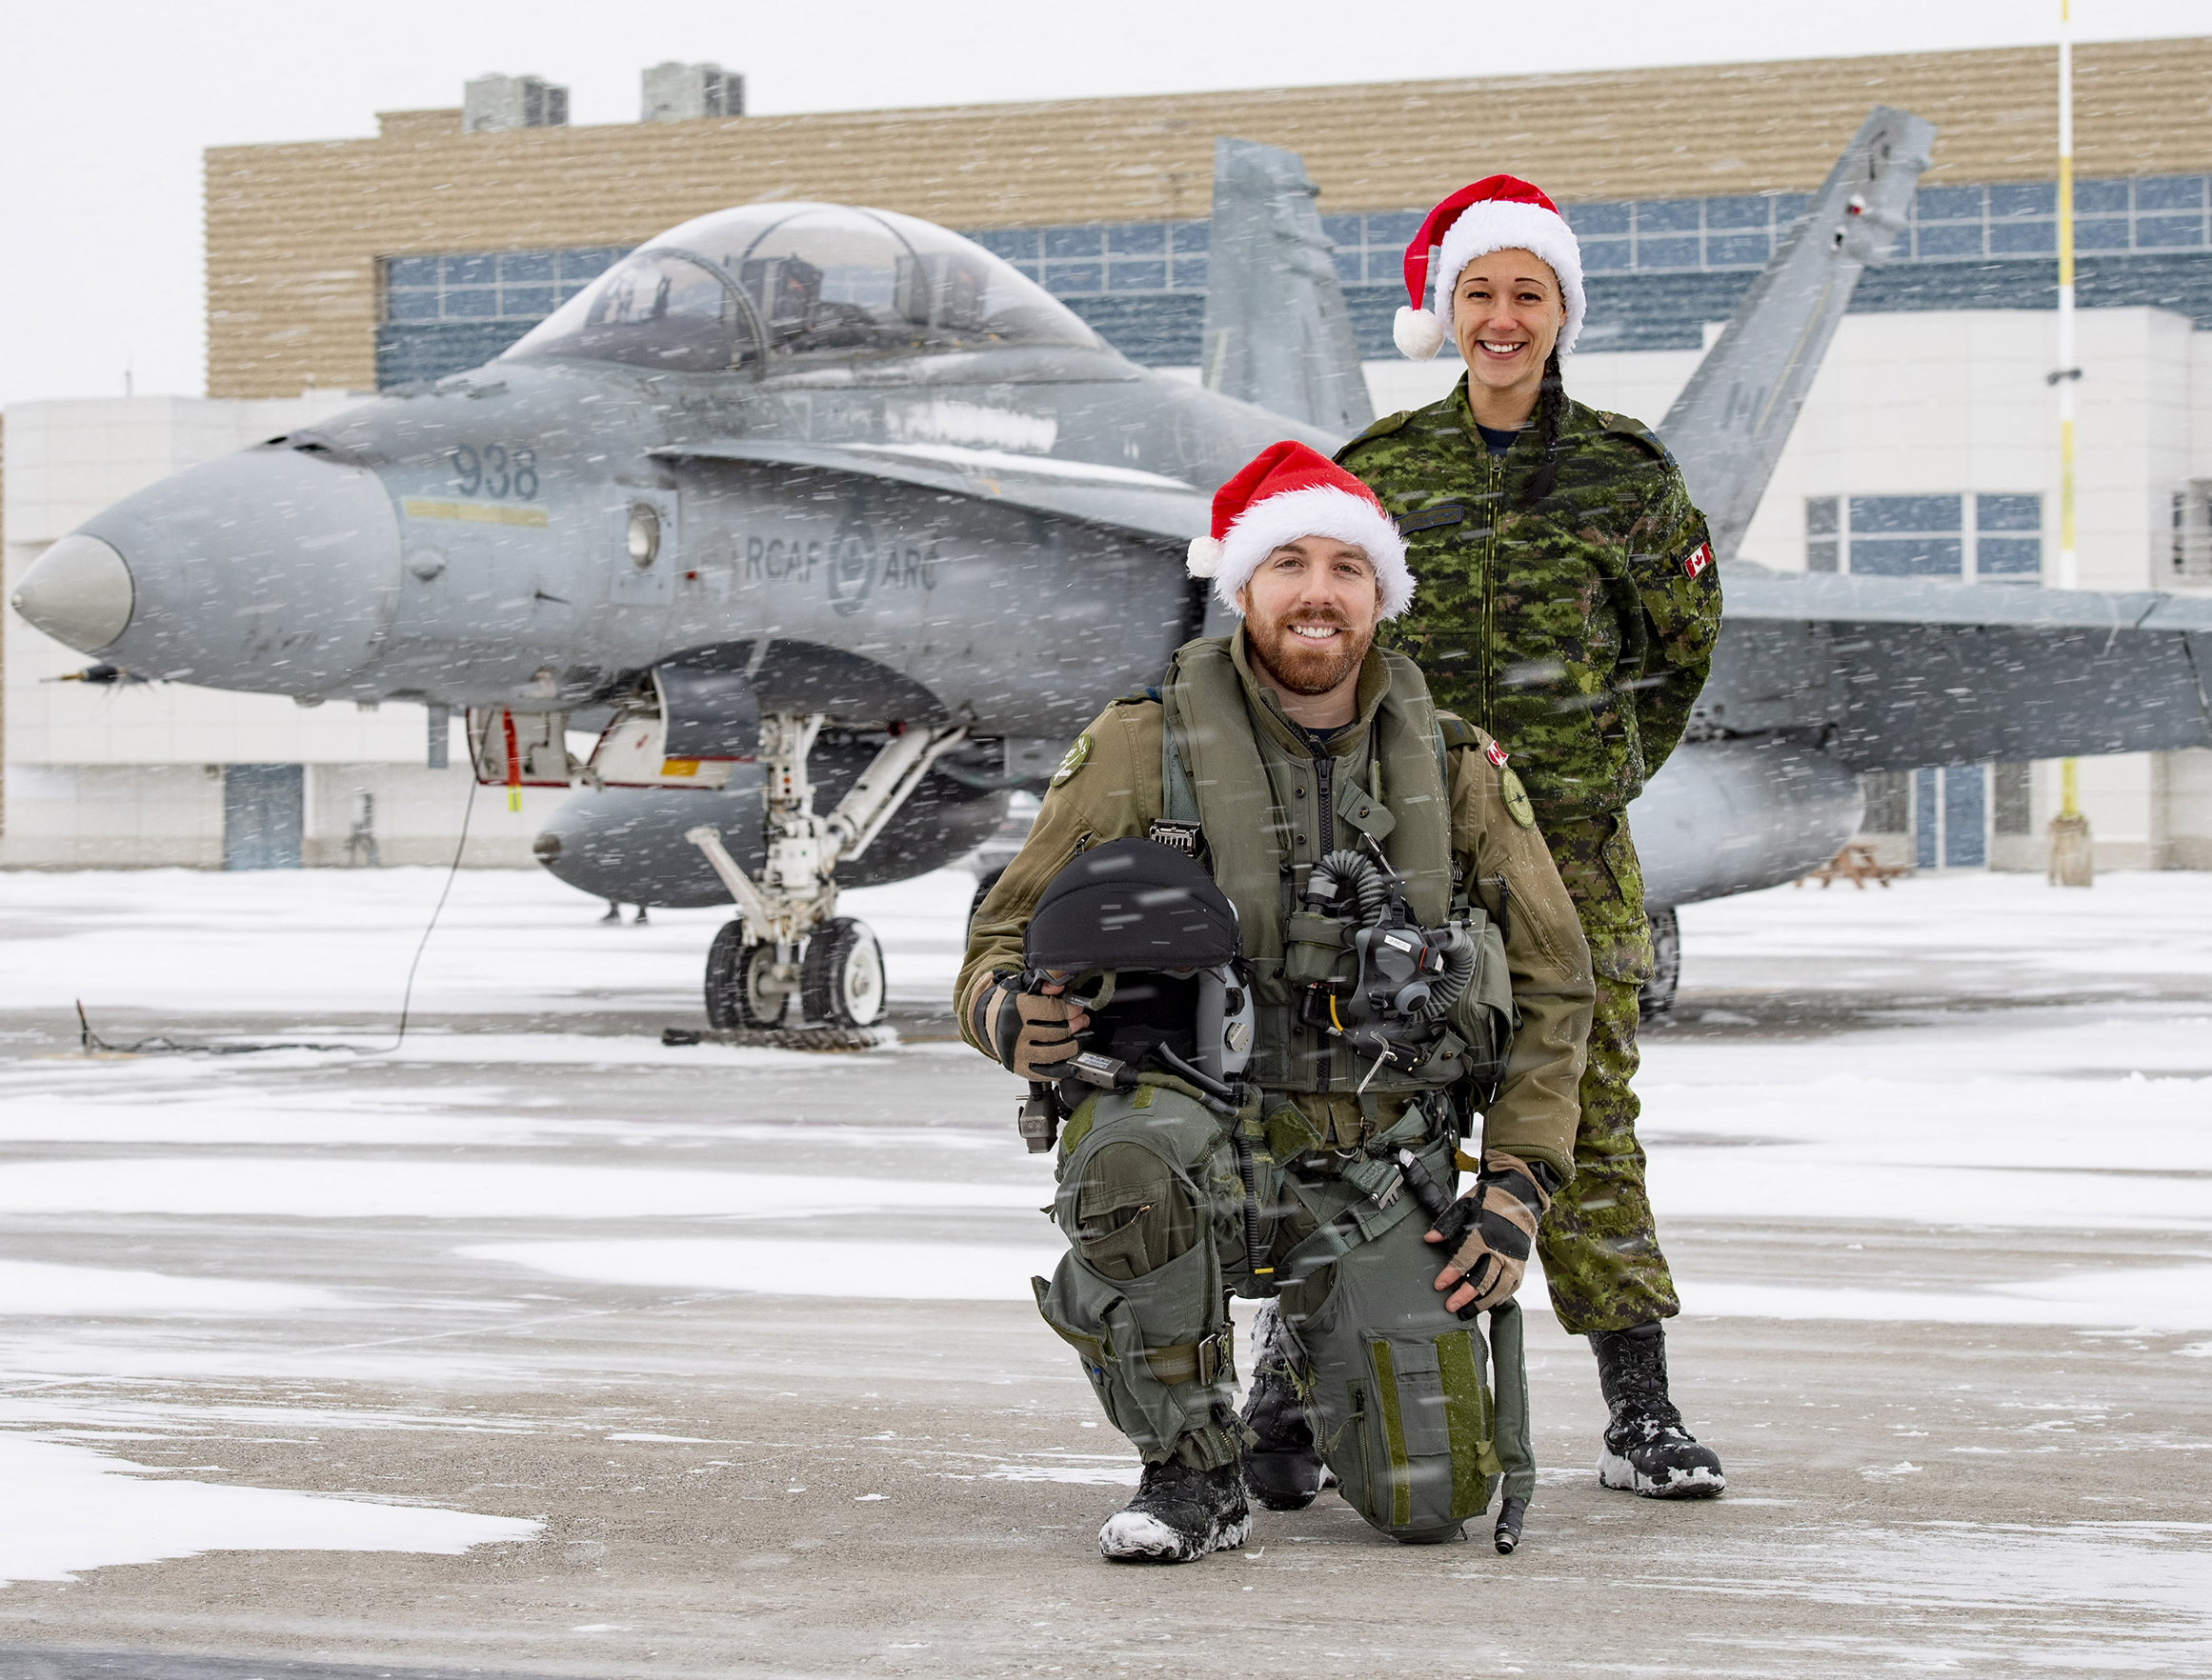 "Two people, one kneeling and one standing, are on a snowy tarmac with a fighter jet behind them. Both wear military uniforms and ""Santa"" hats."